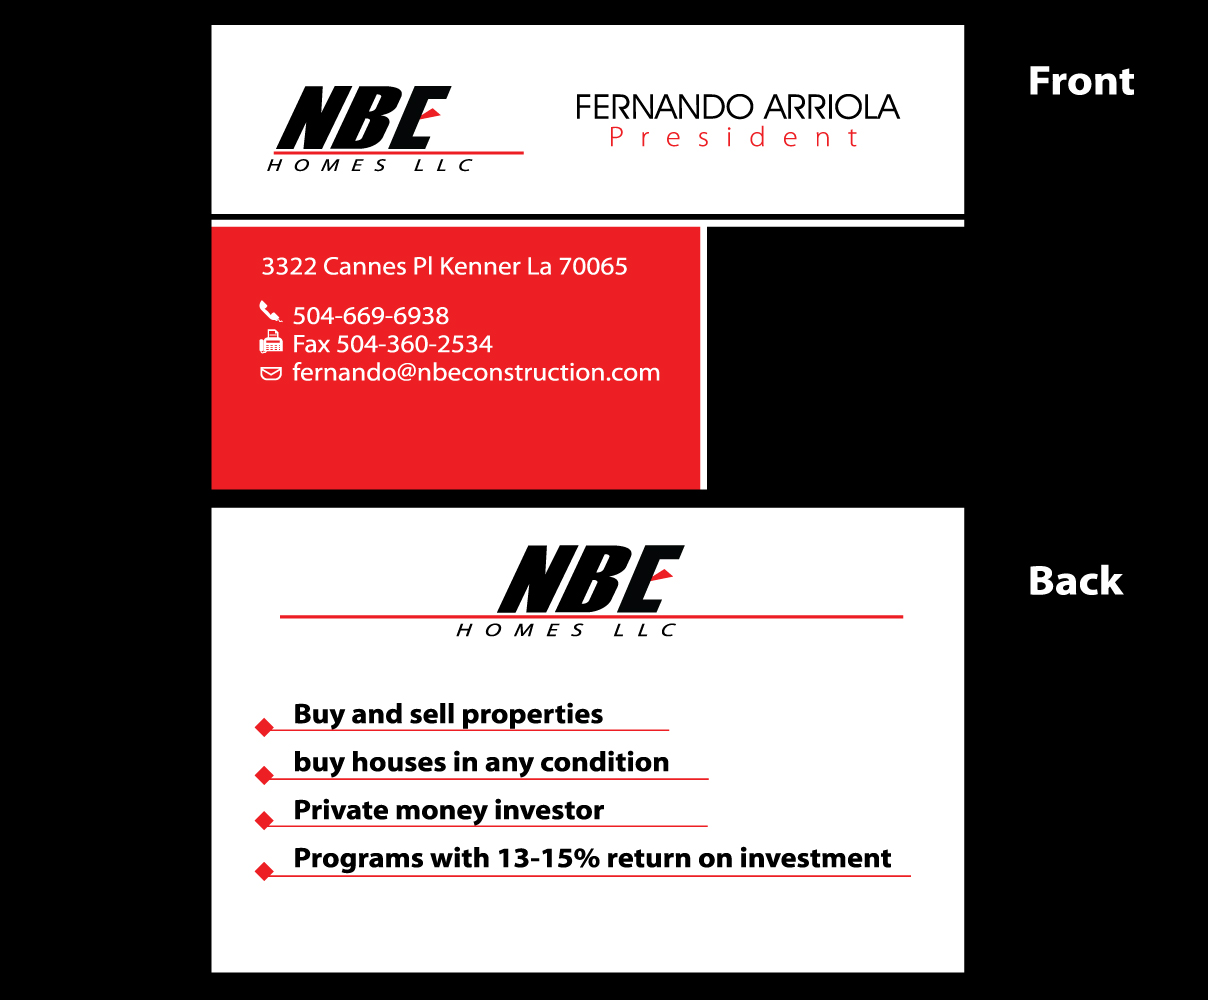 Business card design for fernando arriola by graphicsexpert design business card design by graphicsexpert for nbe homes design 16596221 reheart Choice Image